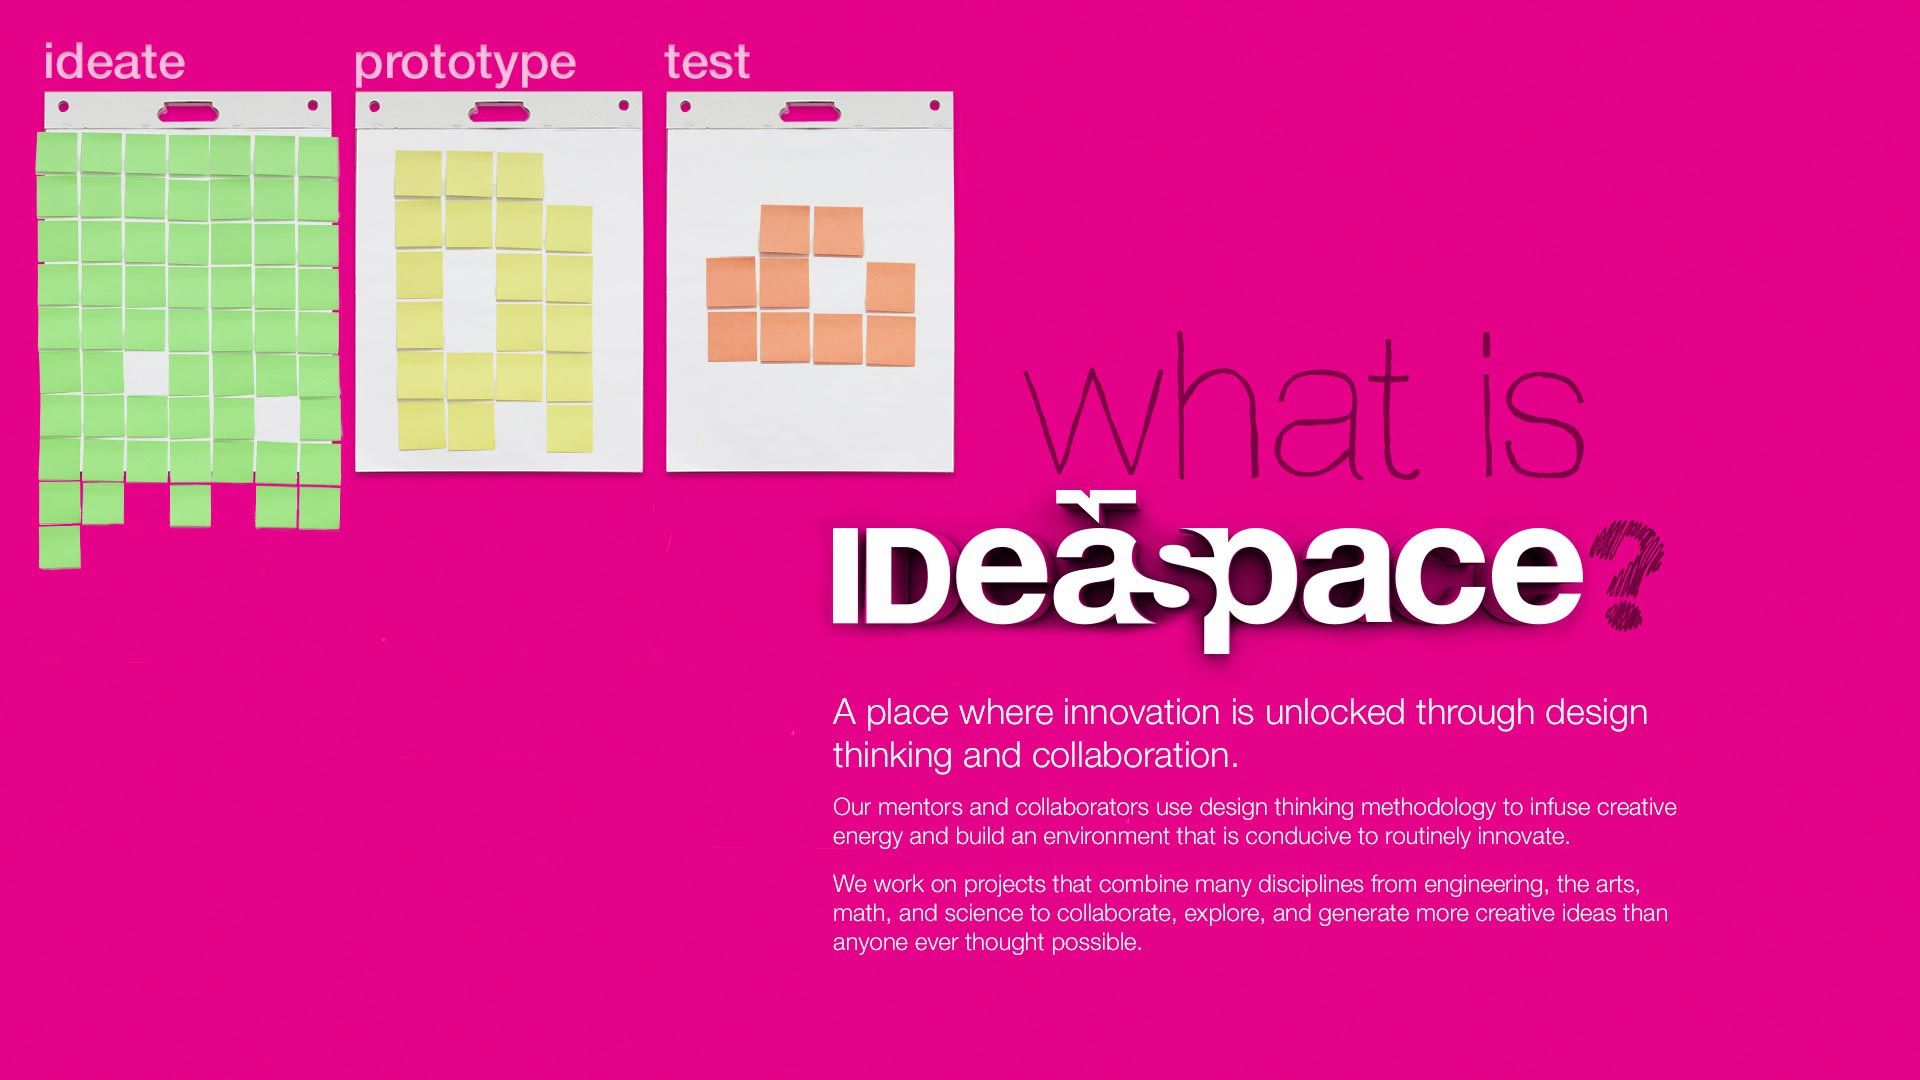 Text reading What is IDeaspace? on a pink background next to three notepads covered in post-it notes